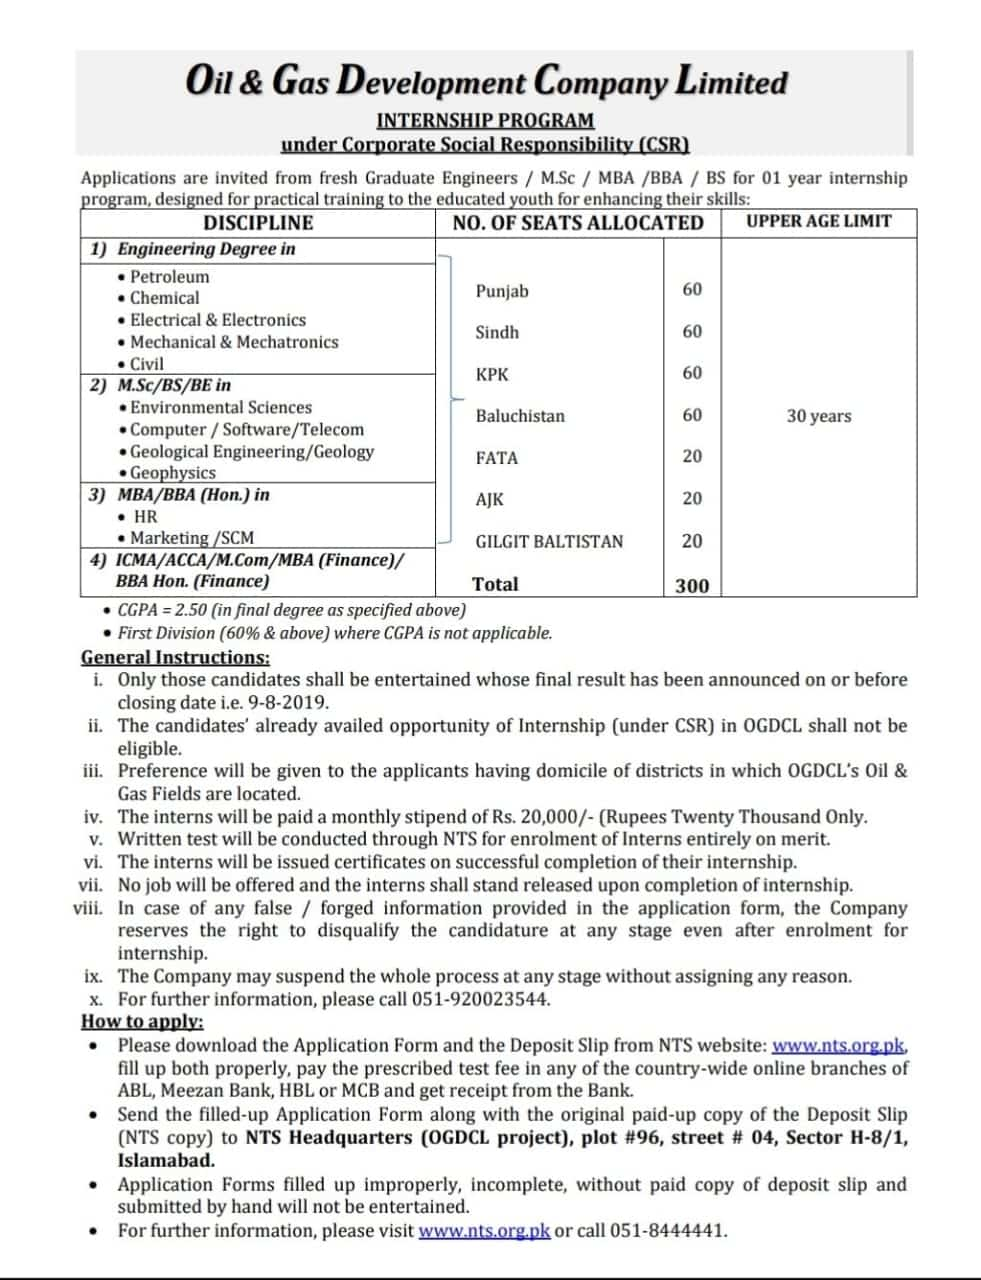 OGDCL Internship 2019 for One Year – Monthly Stipend of Rs